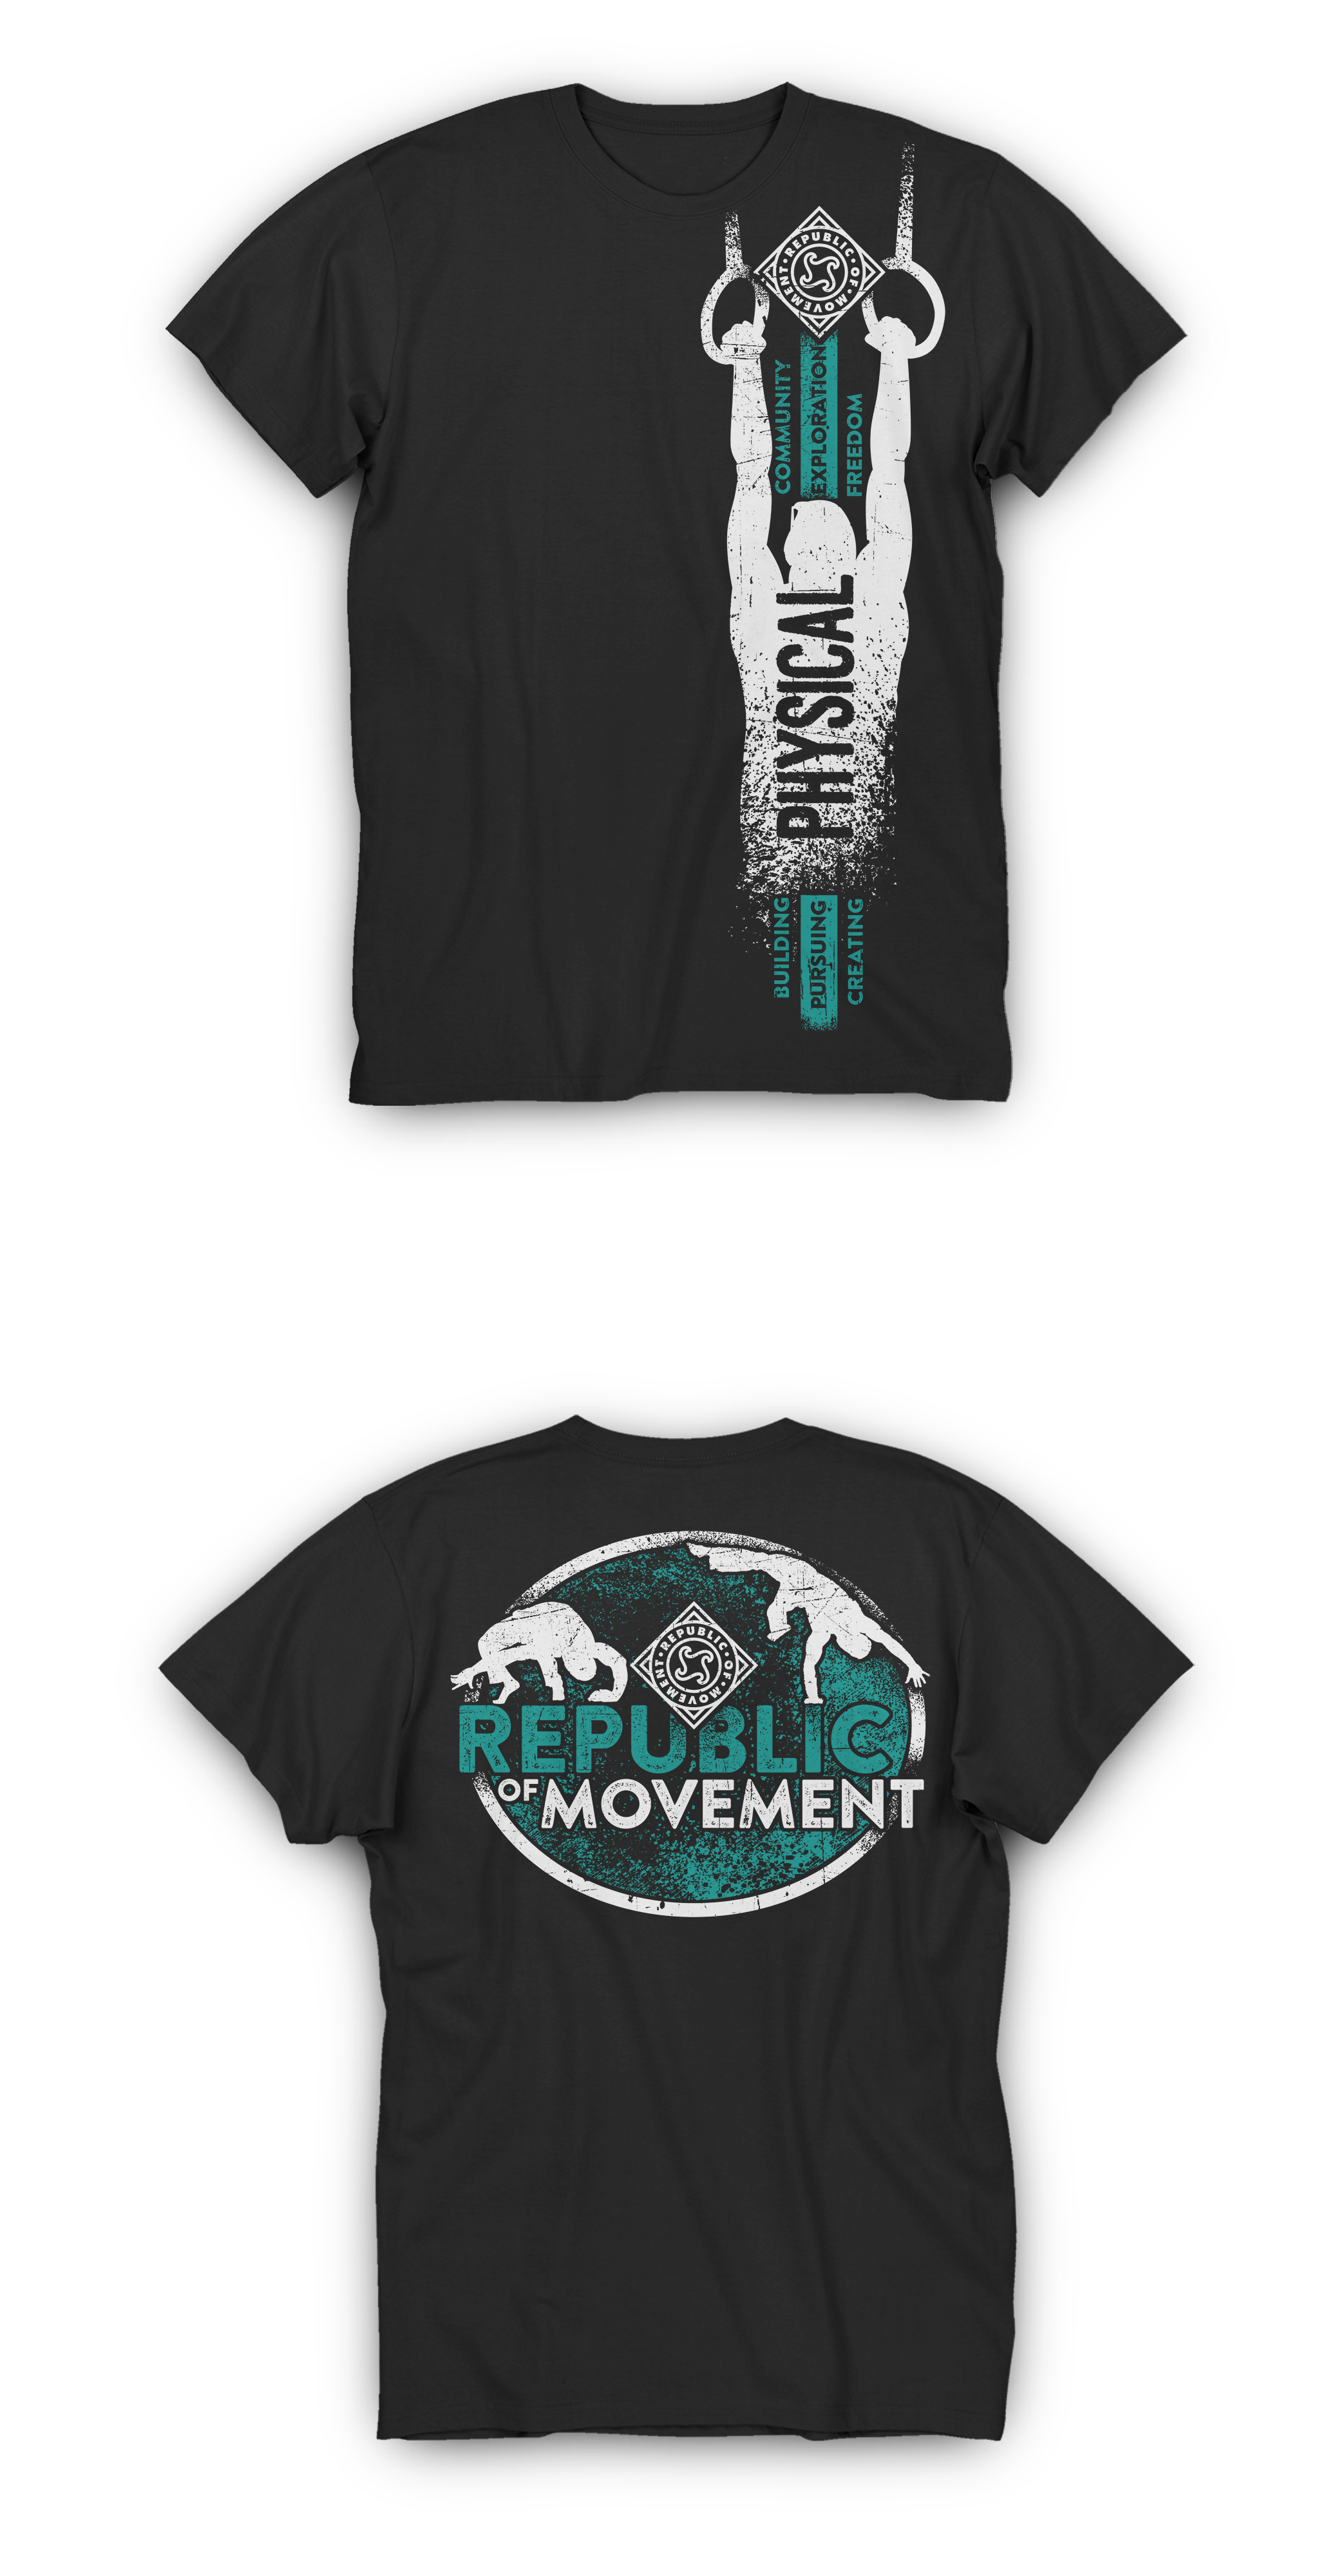 T-shirt design for the Republic Of Movement.